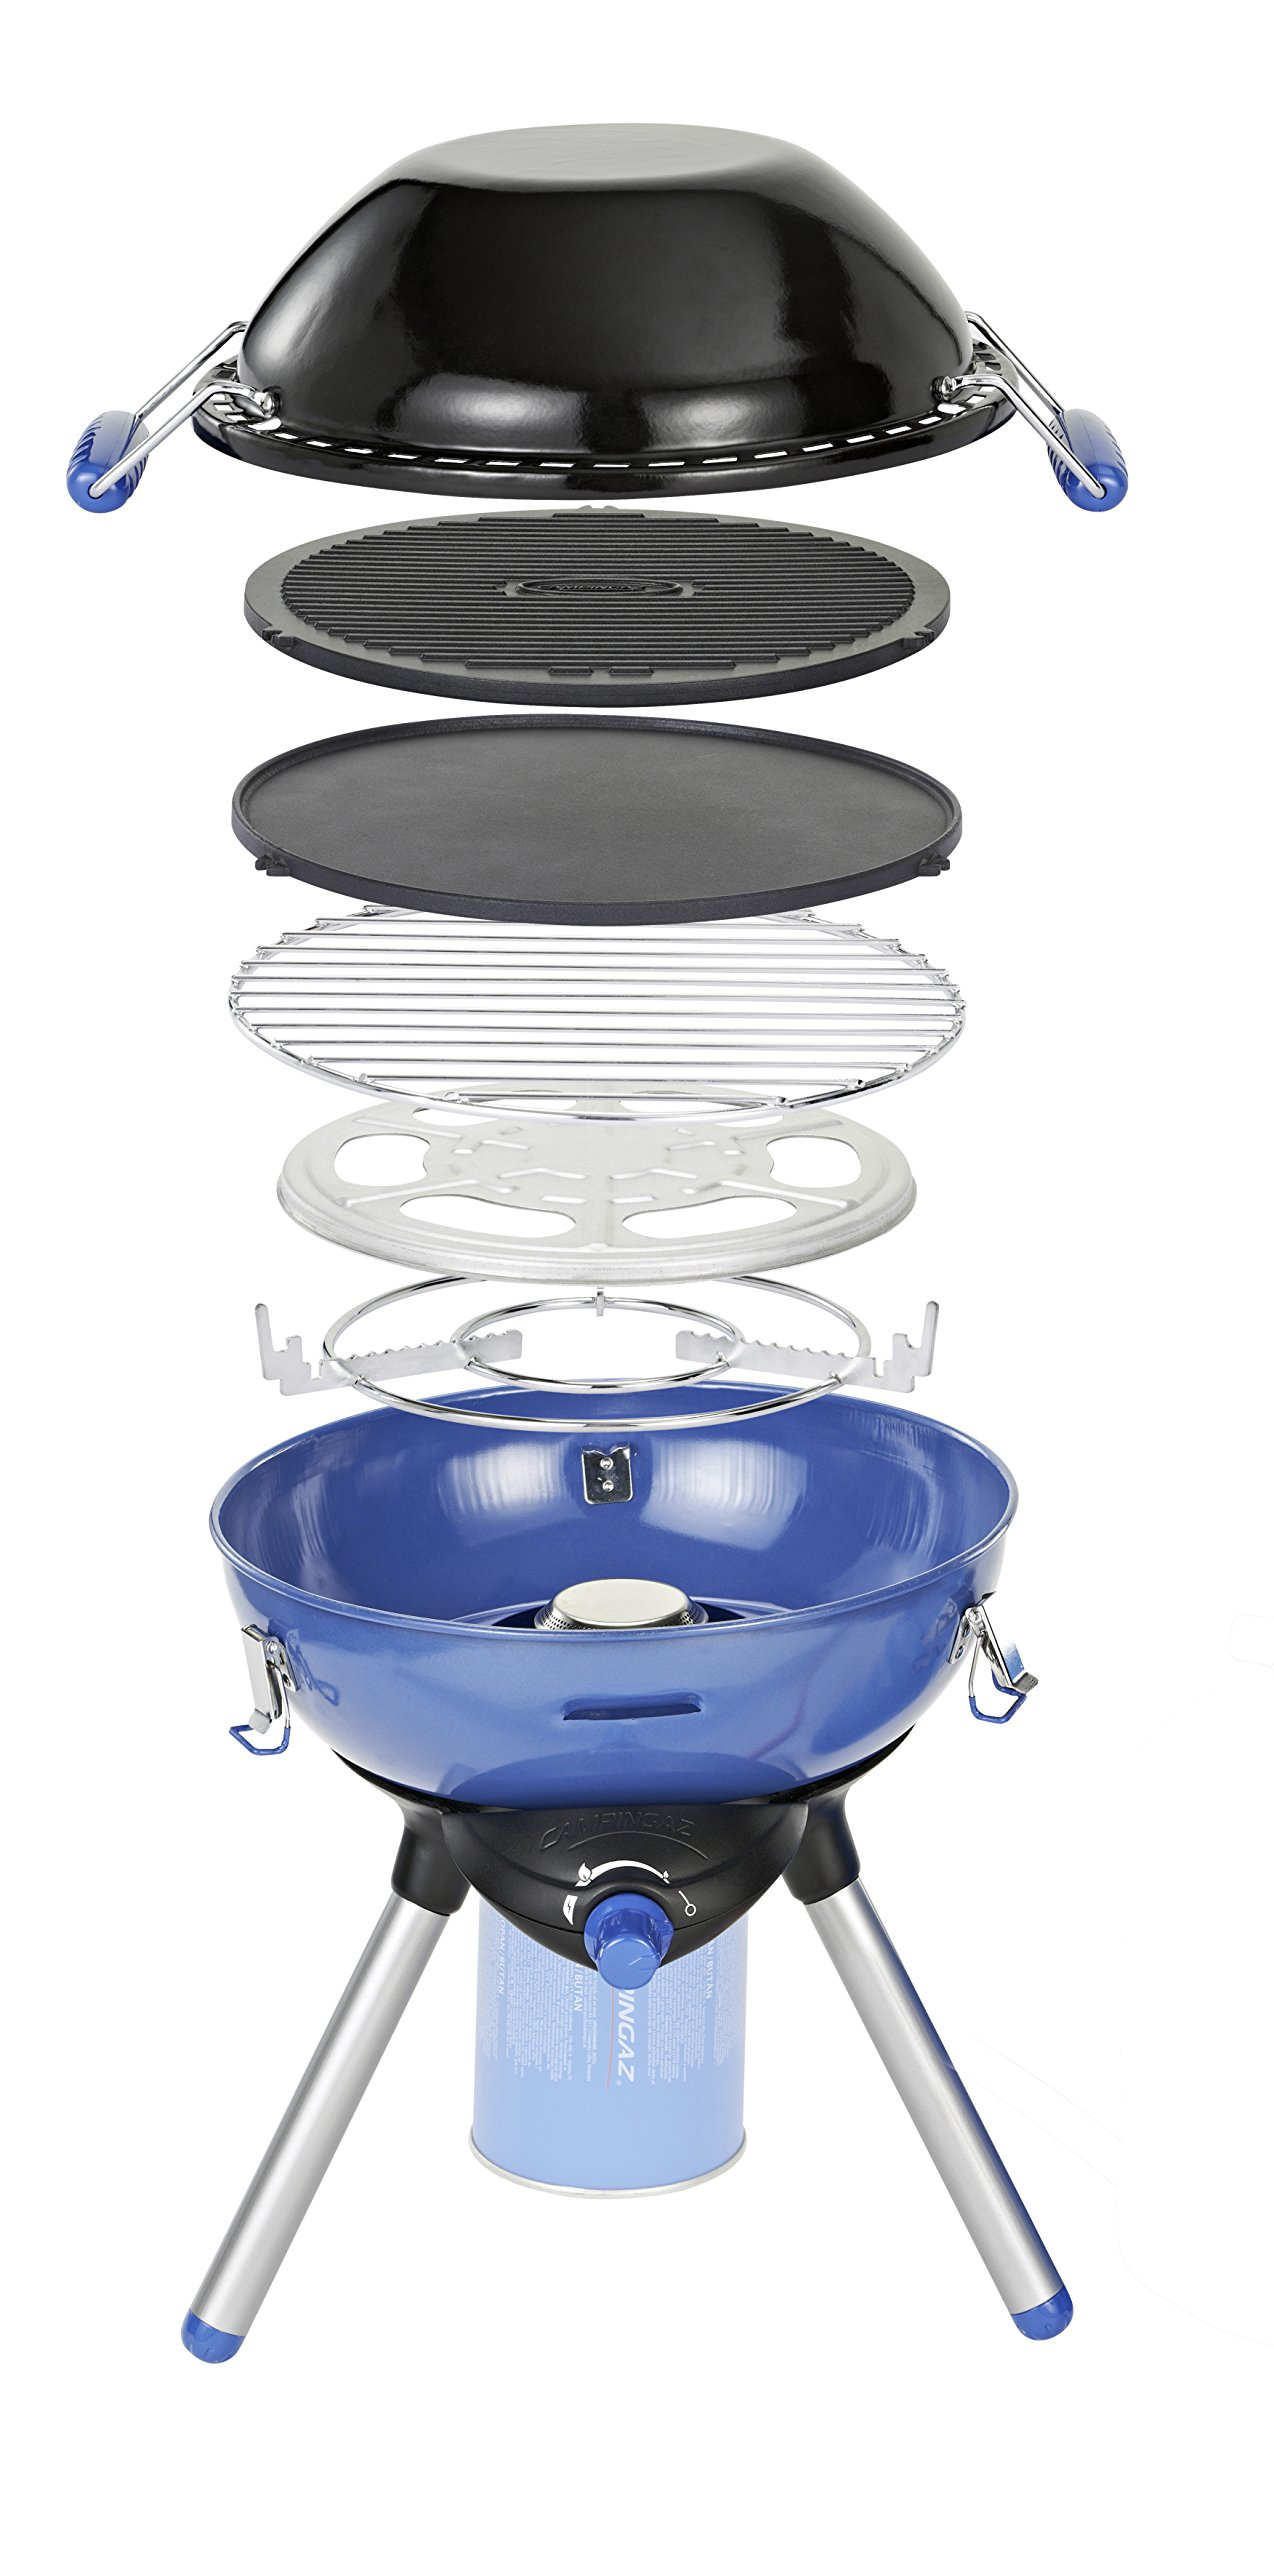 Campingaz Party Grill 400 Camping Stove, All in One portable Camping BBQ, Outdoor Grill & Stove, Small Gas Barbecue 2.000 Watt, Runs on CV 470 Plus Gas Cartridge 1